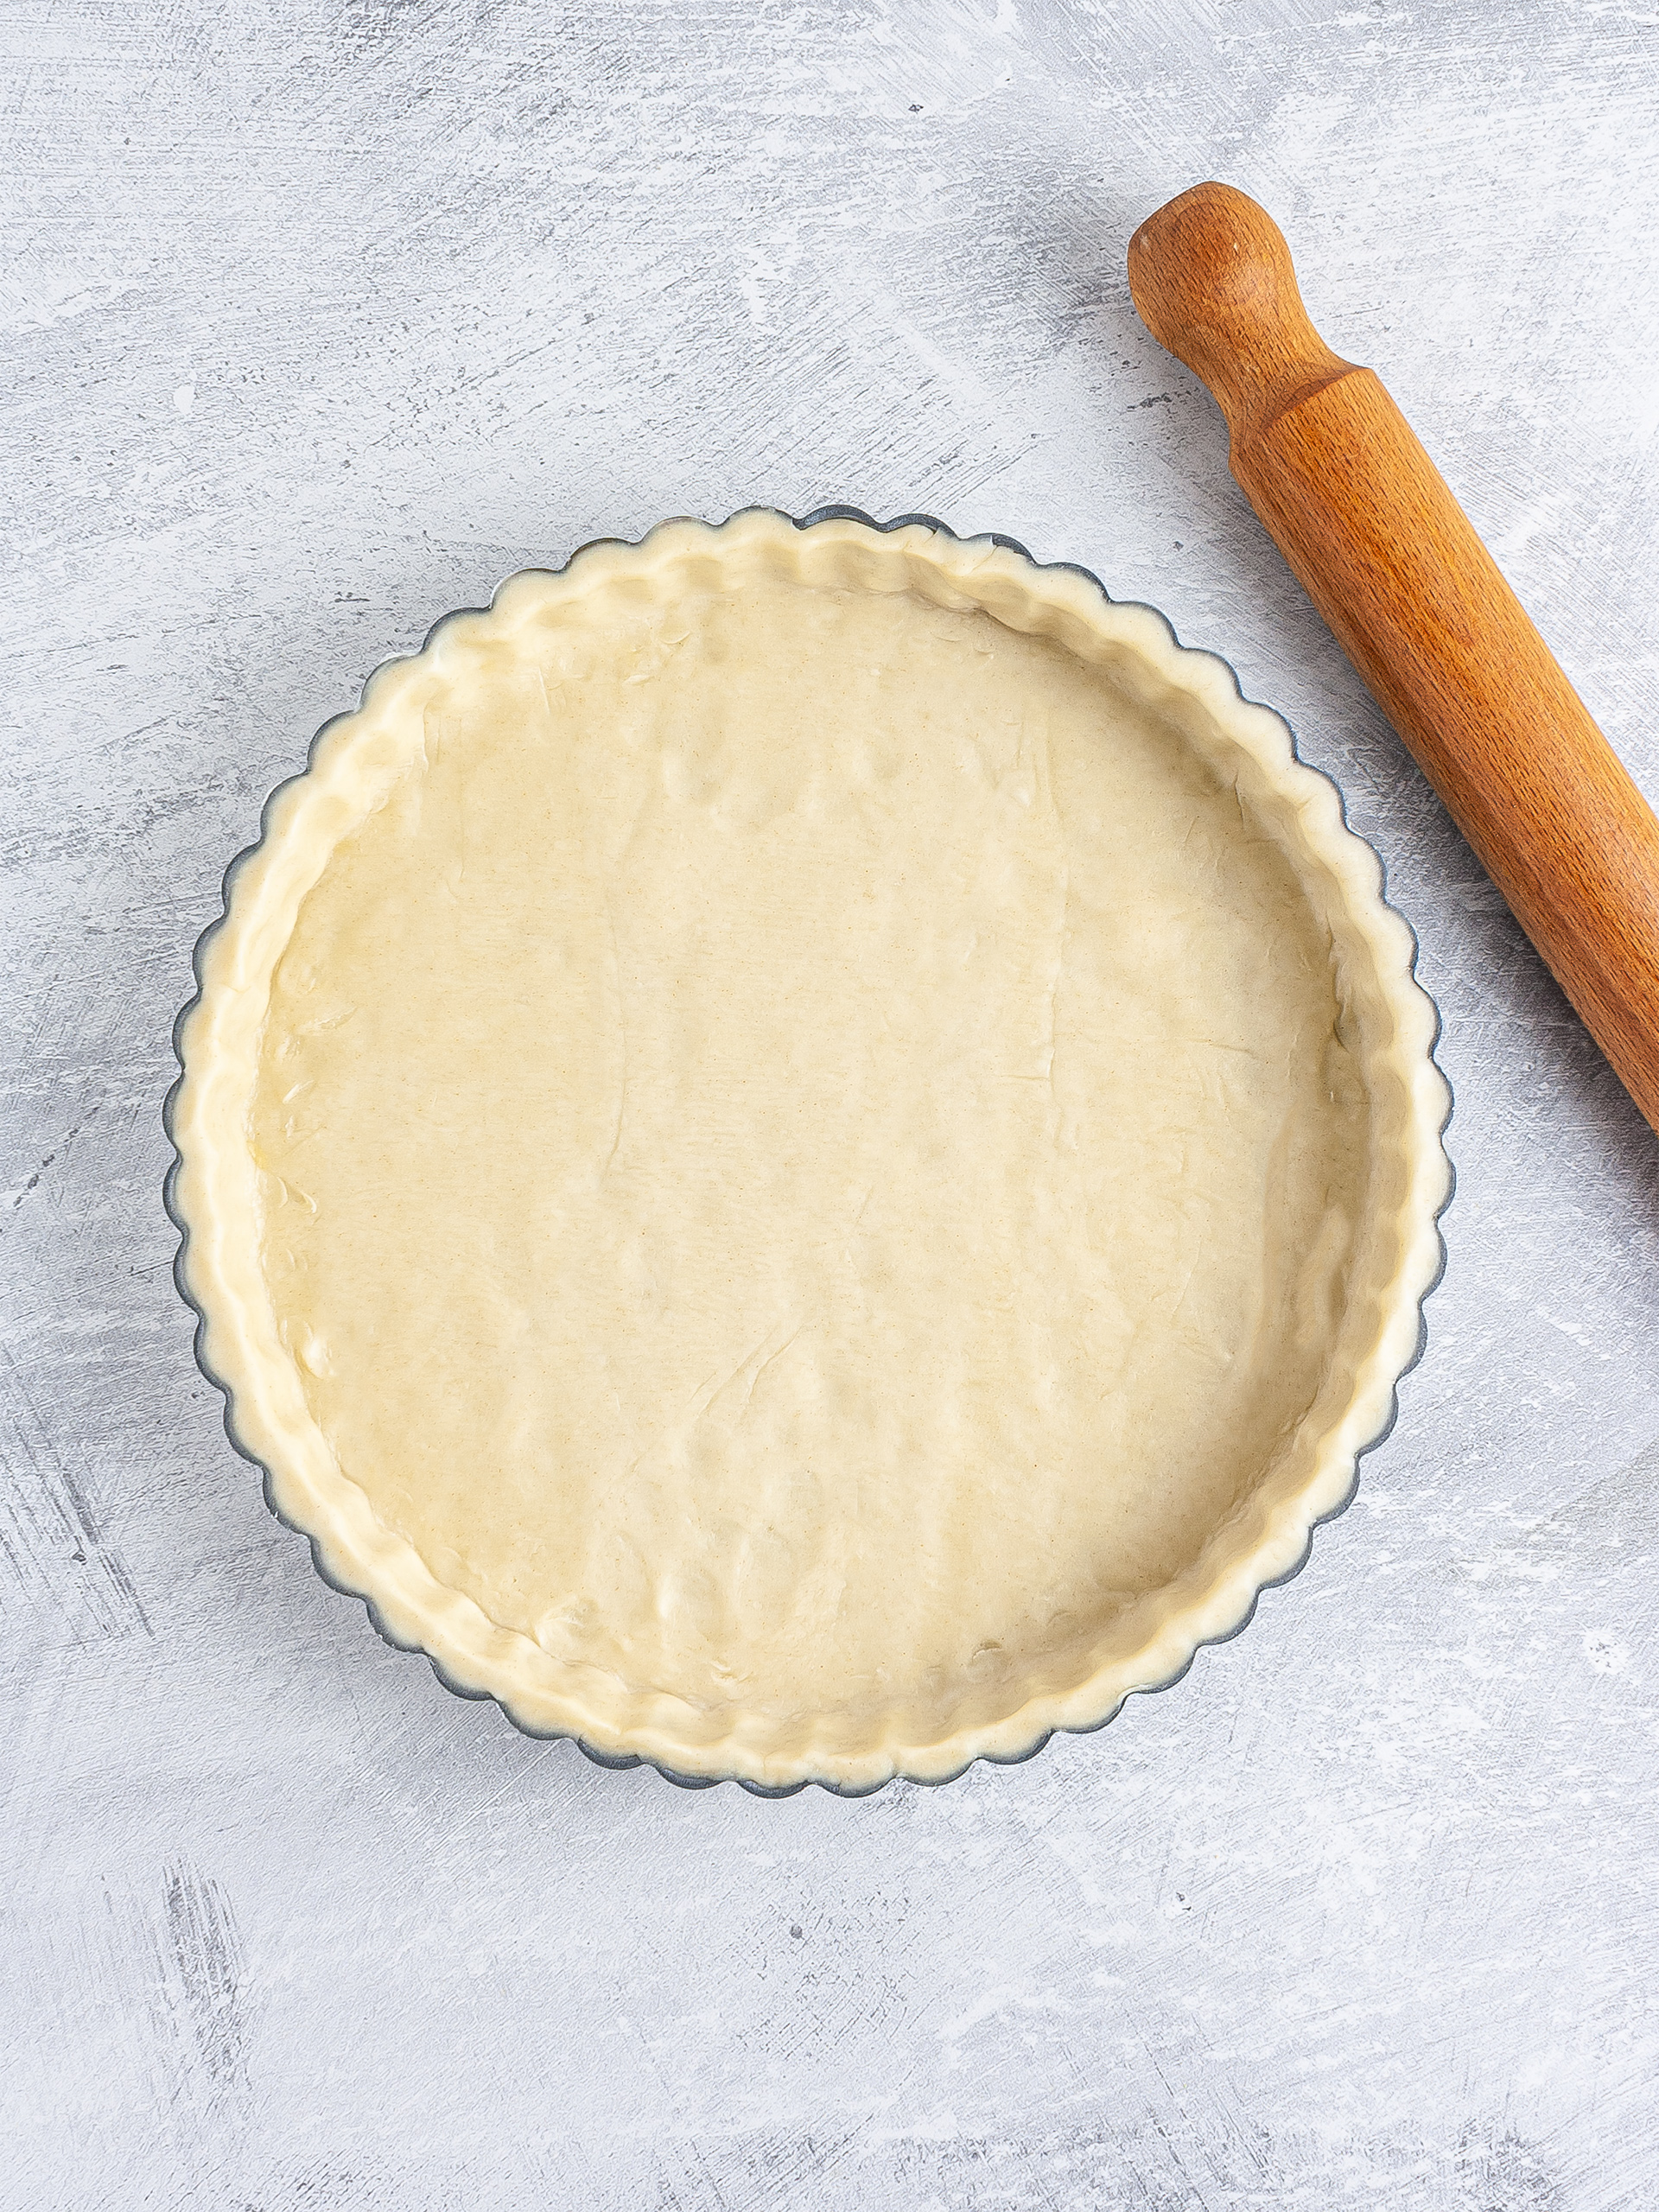 Shortcrust pastry in a pie dish